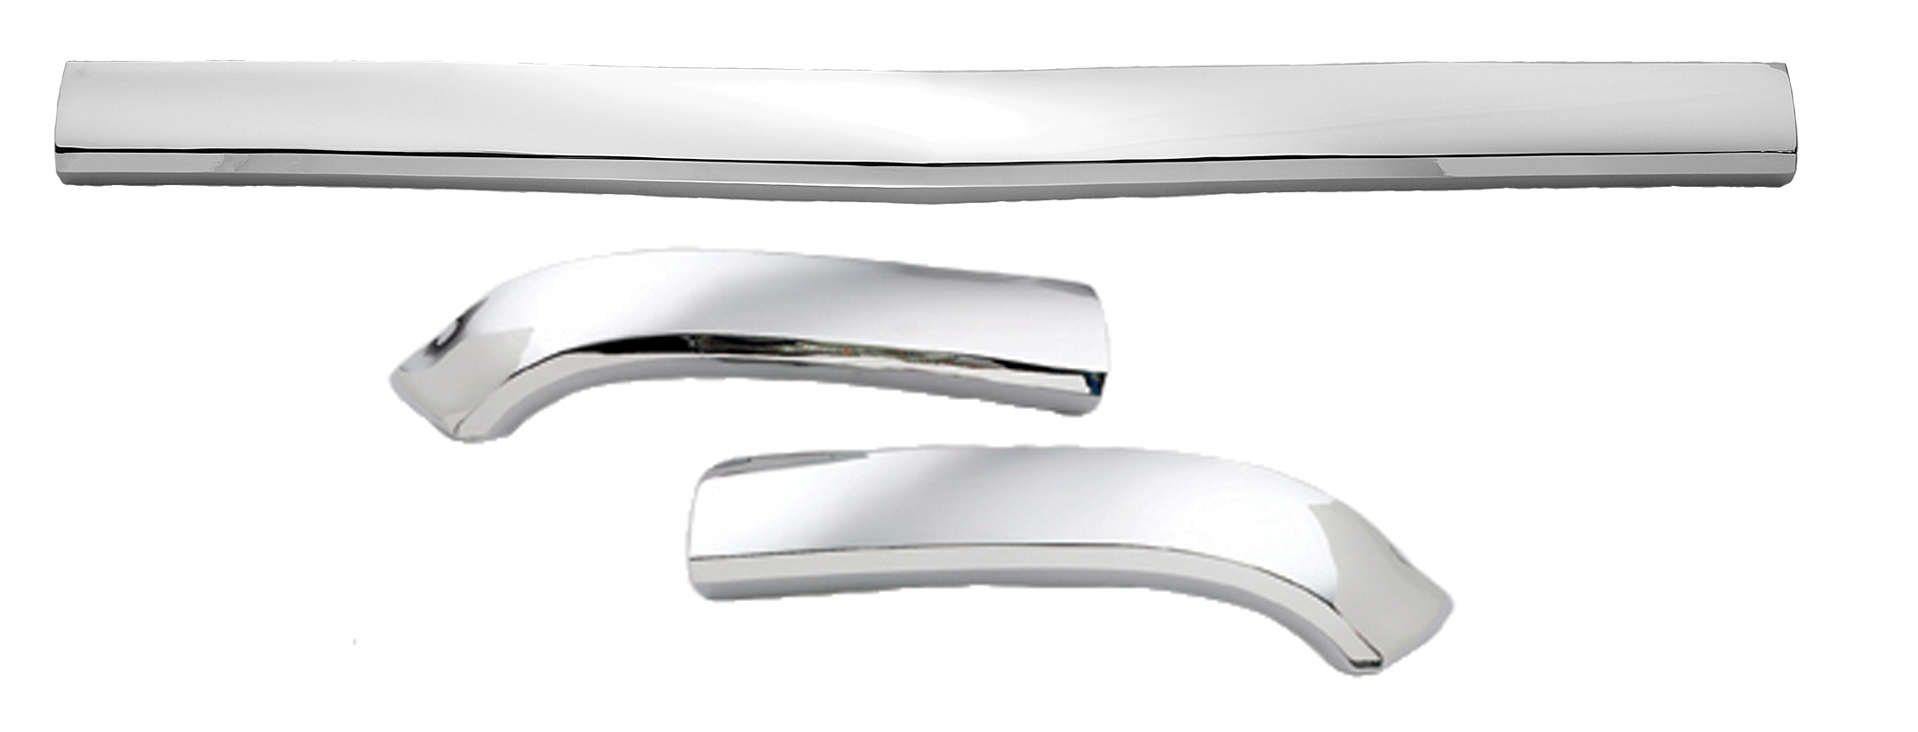 Chevrolet 57 Hood Bar Extension kit with mounting hardware